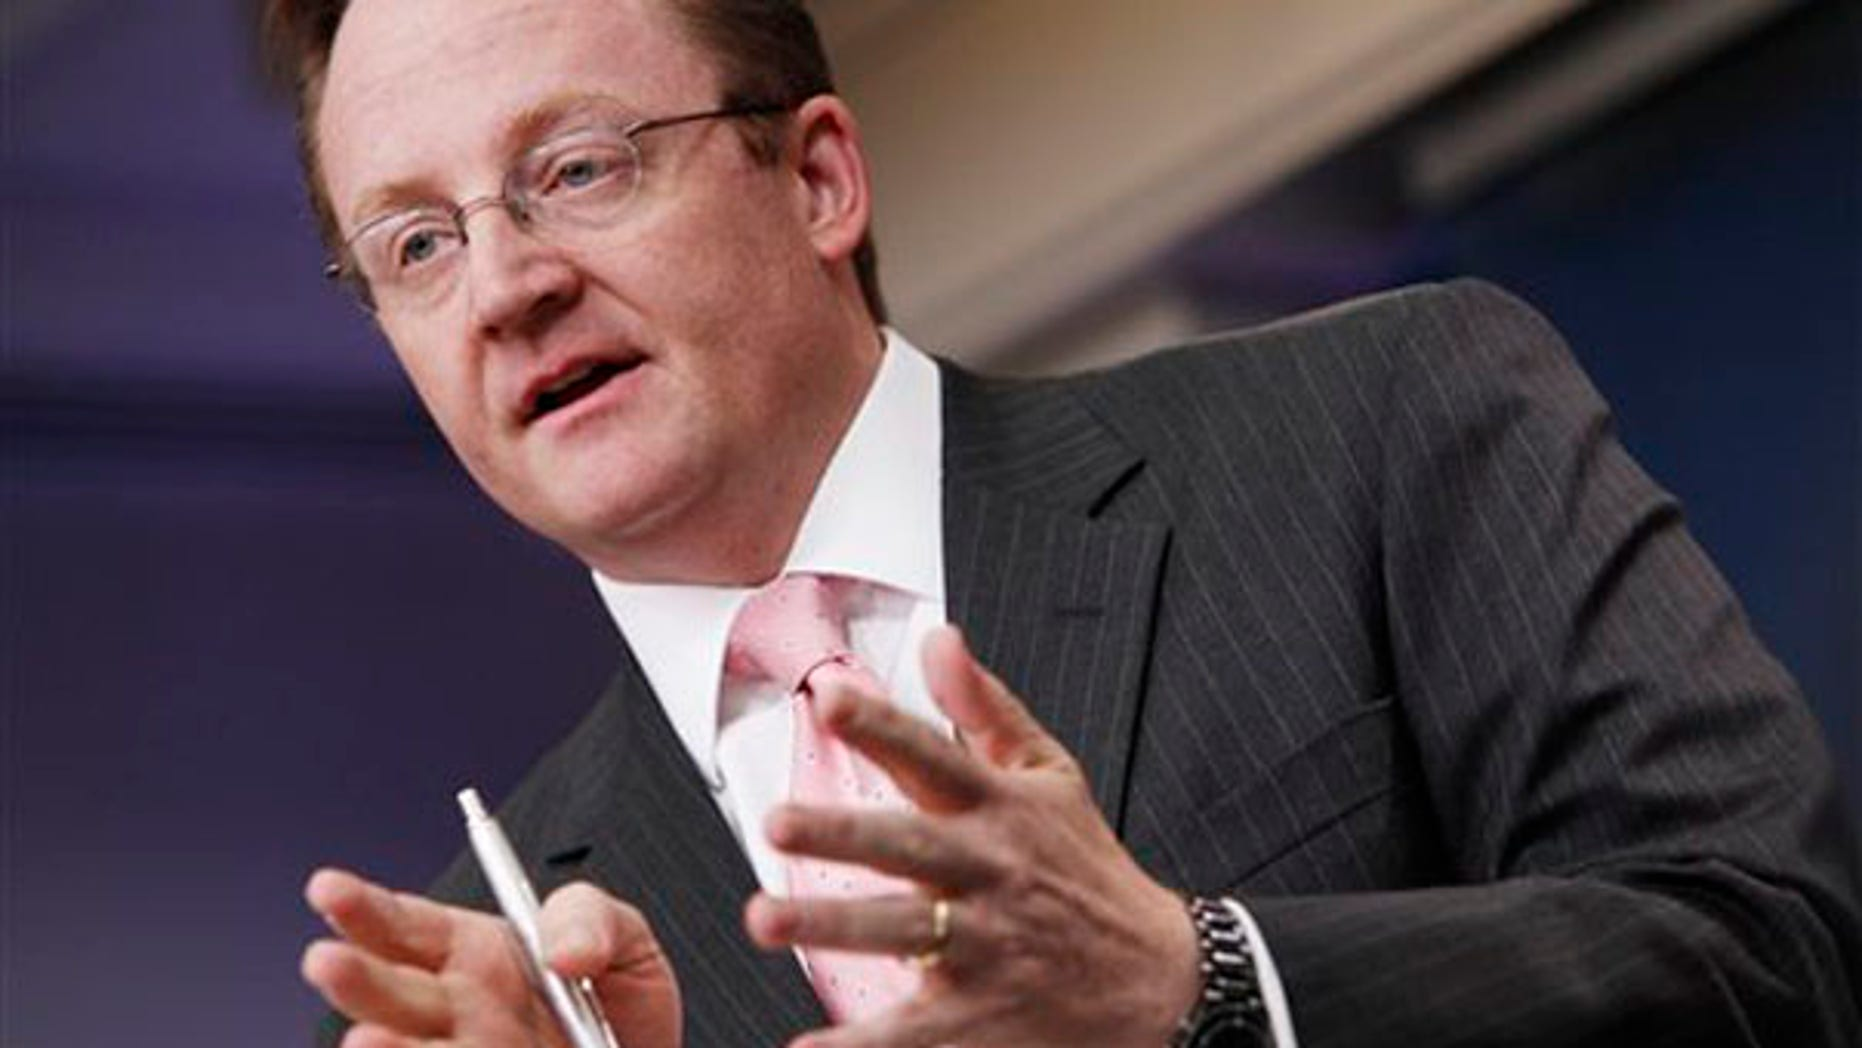 FILE: Robert Gibbs, as White House press secretary, briefs reporters in Washington.